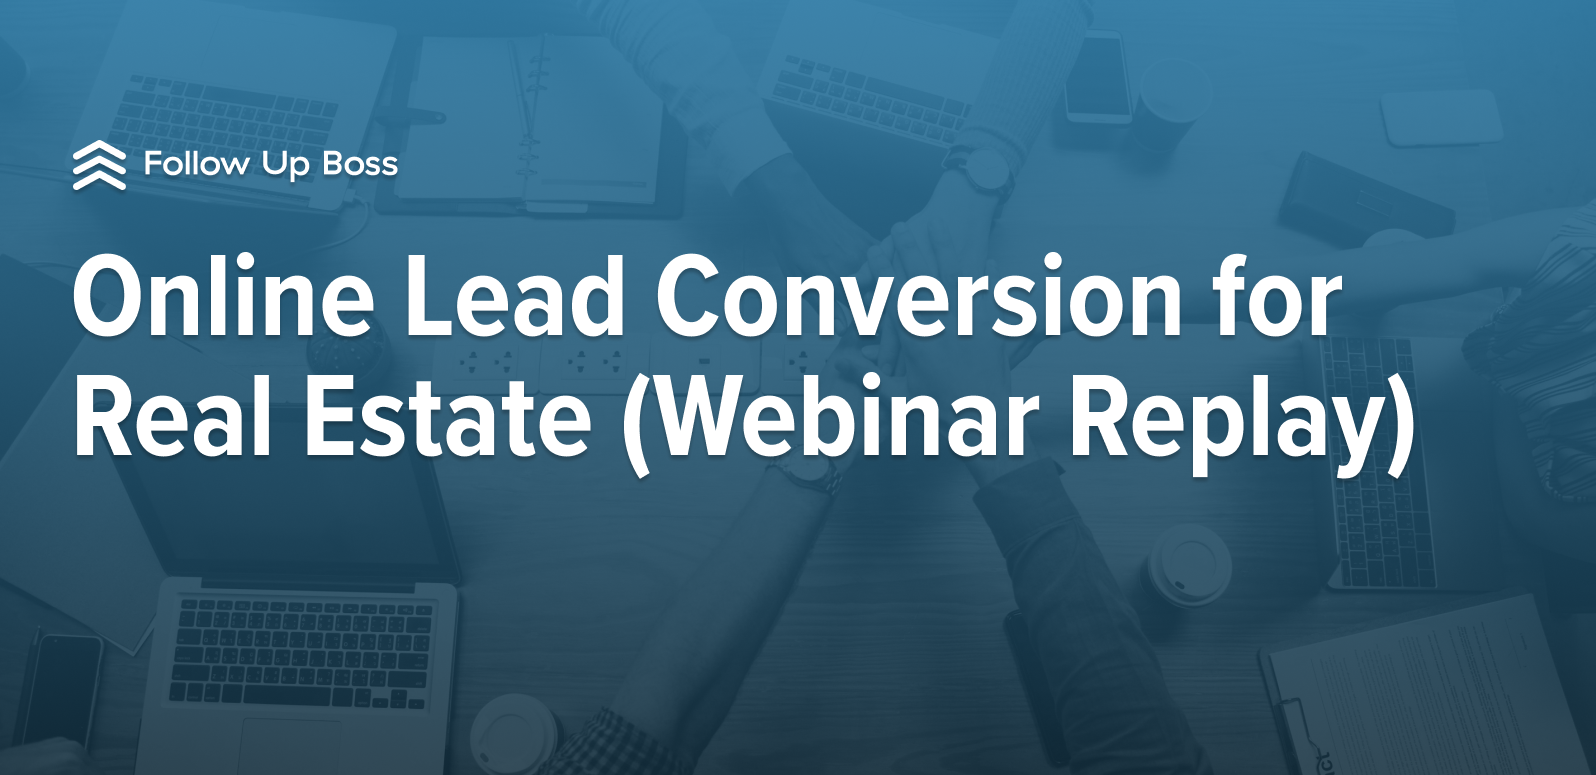 Online Lead Conversion for Real Estate (Webinar Replay)